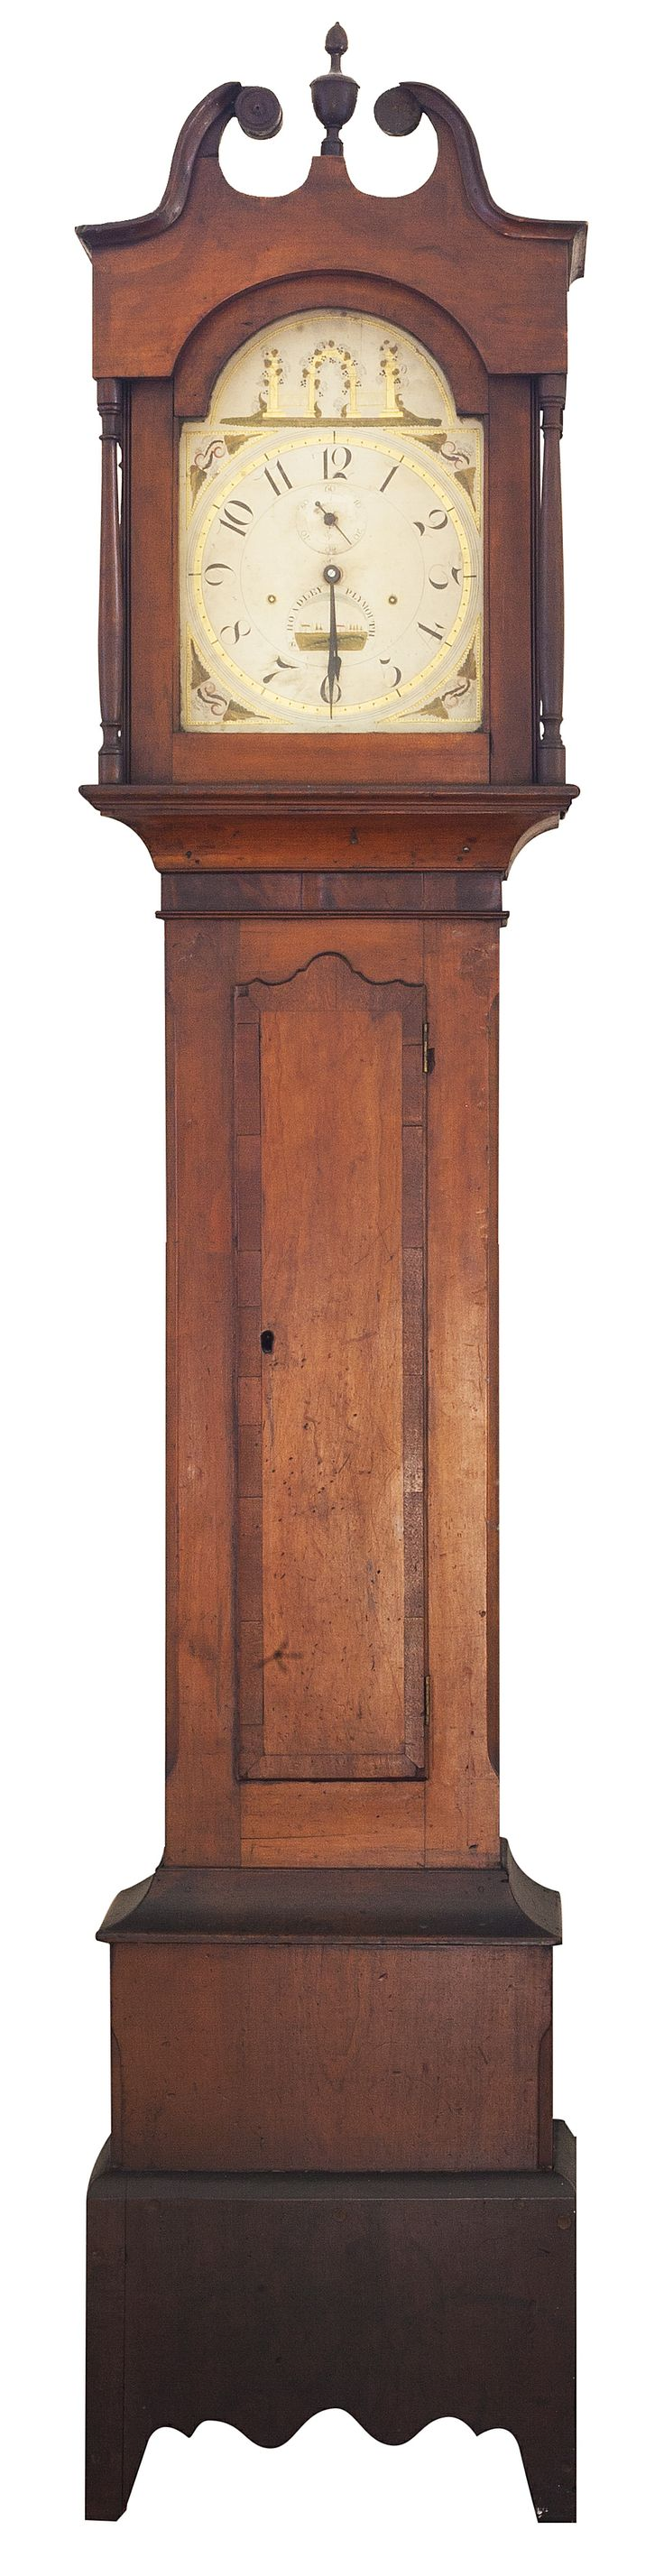 Tall Clock, case attributed to Elijah Warner, cherry with mahogany veneer, ca.1820, Lexington. Face by S. (Silas) Hoadley-Plymouth, Connecticut.